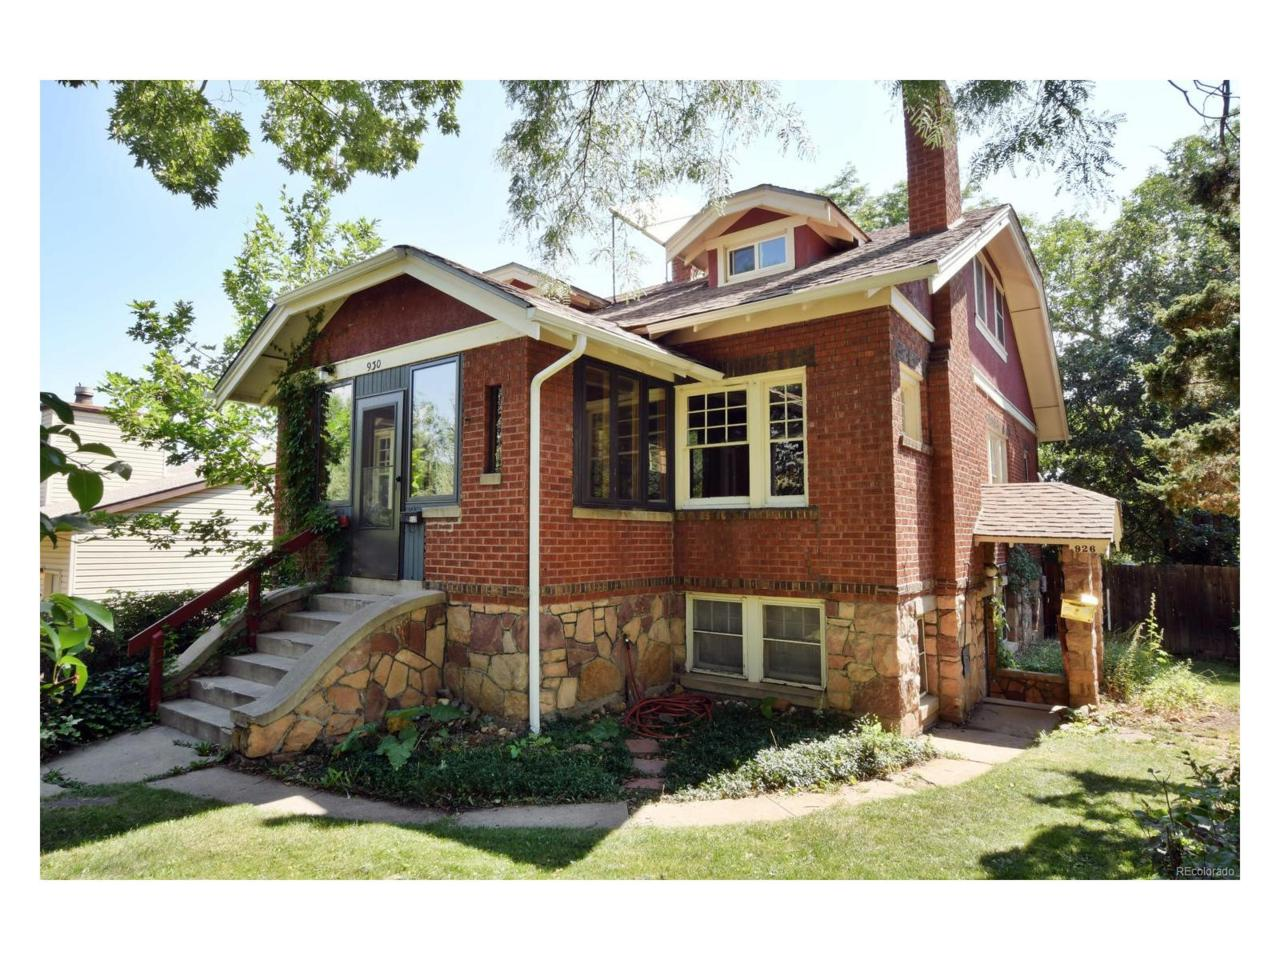 926 13th Street, Boulder, CO 80302 (MLS #4366610) :: 8z Real Estate